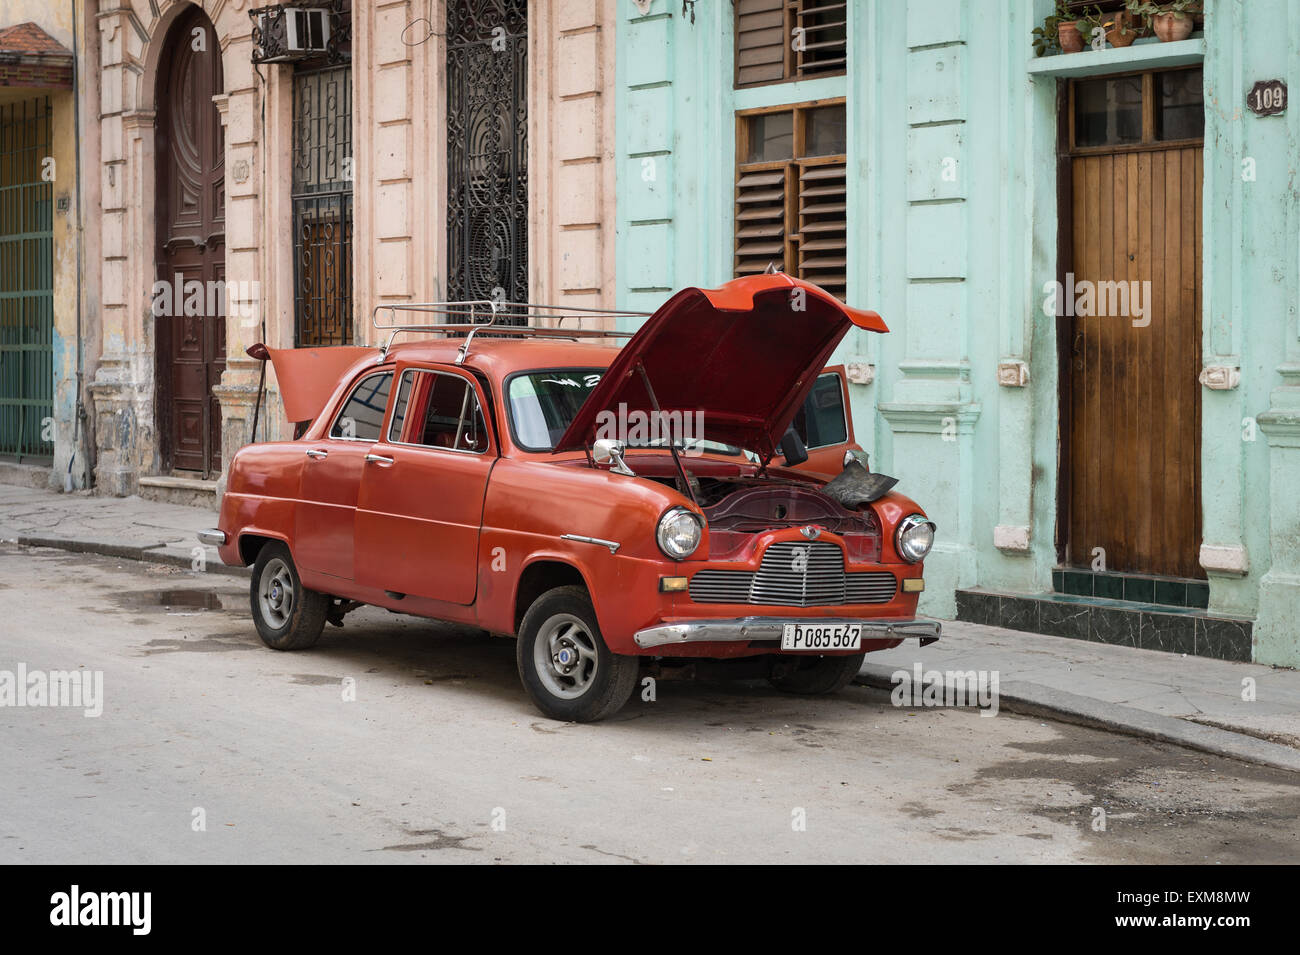 A red Cuban classic car parked undergoing repairs in a central Havana street - Stock Image